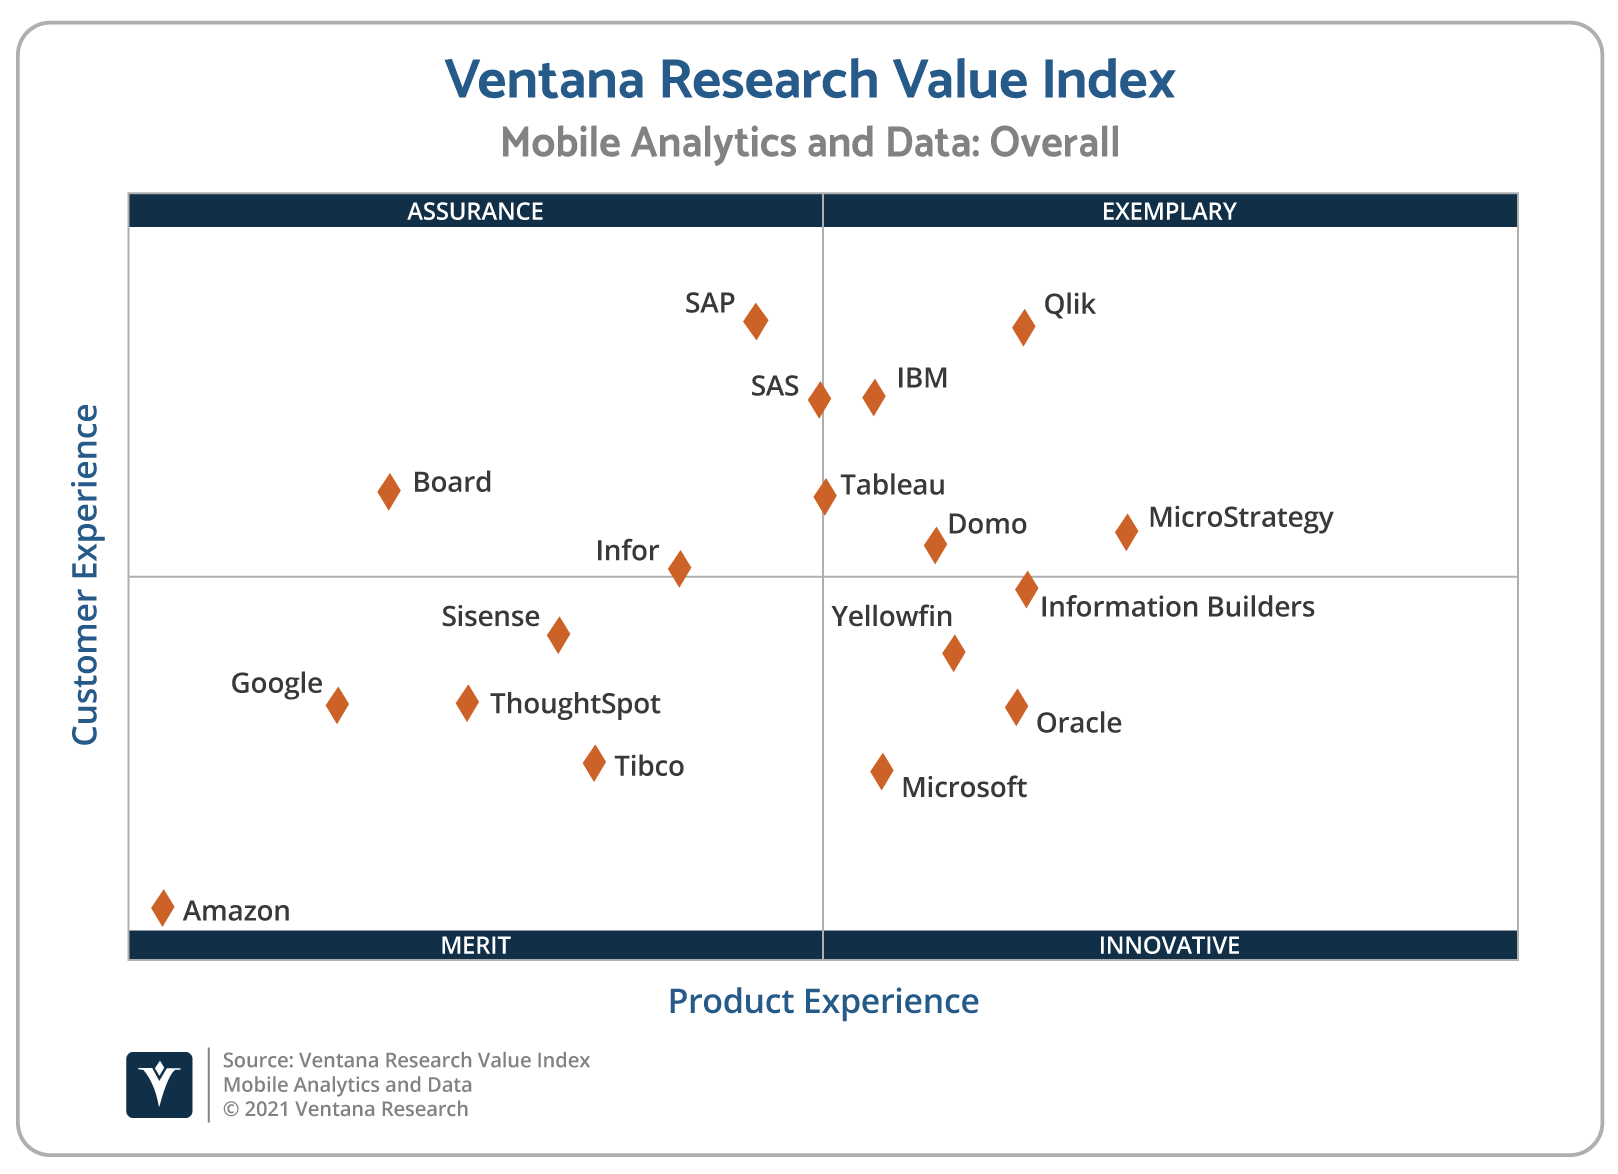 Ventana_Research_Value_Index_Mobile_Analytics_and_Data_Scatter